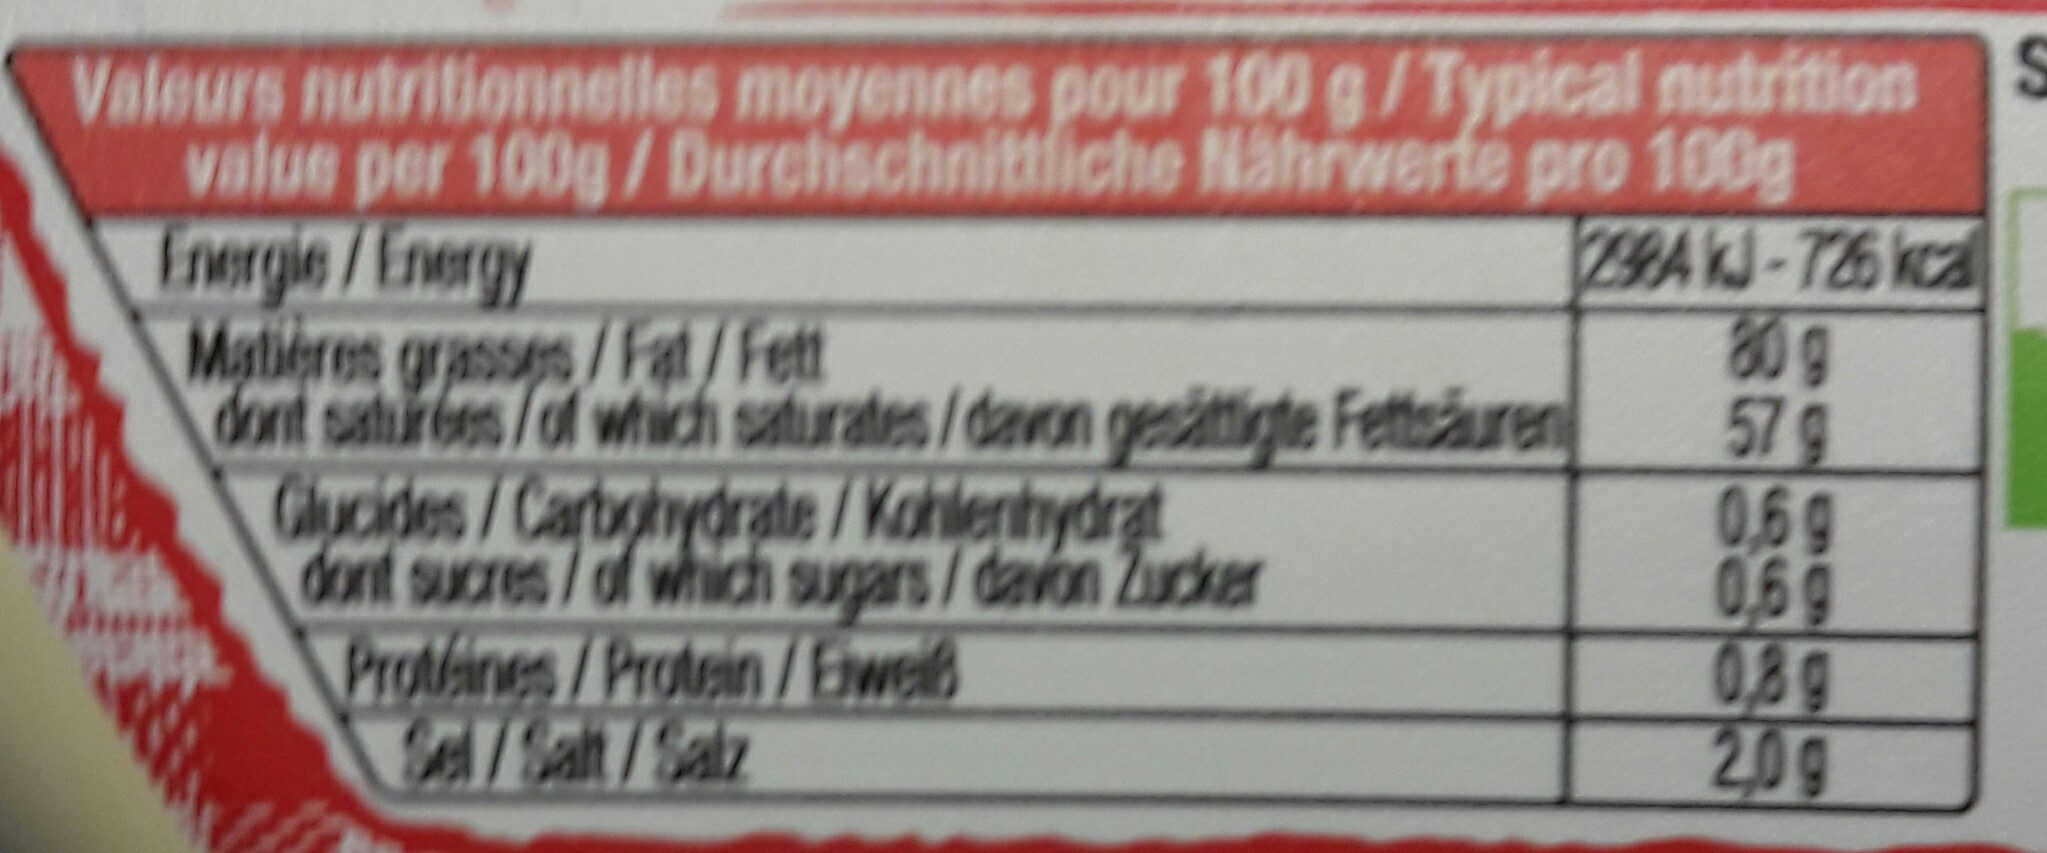 Le Beurrier Demi-Sel - Nutrition facts - fr